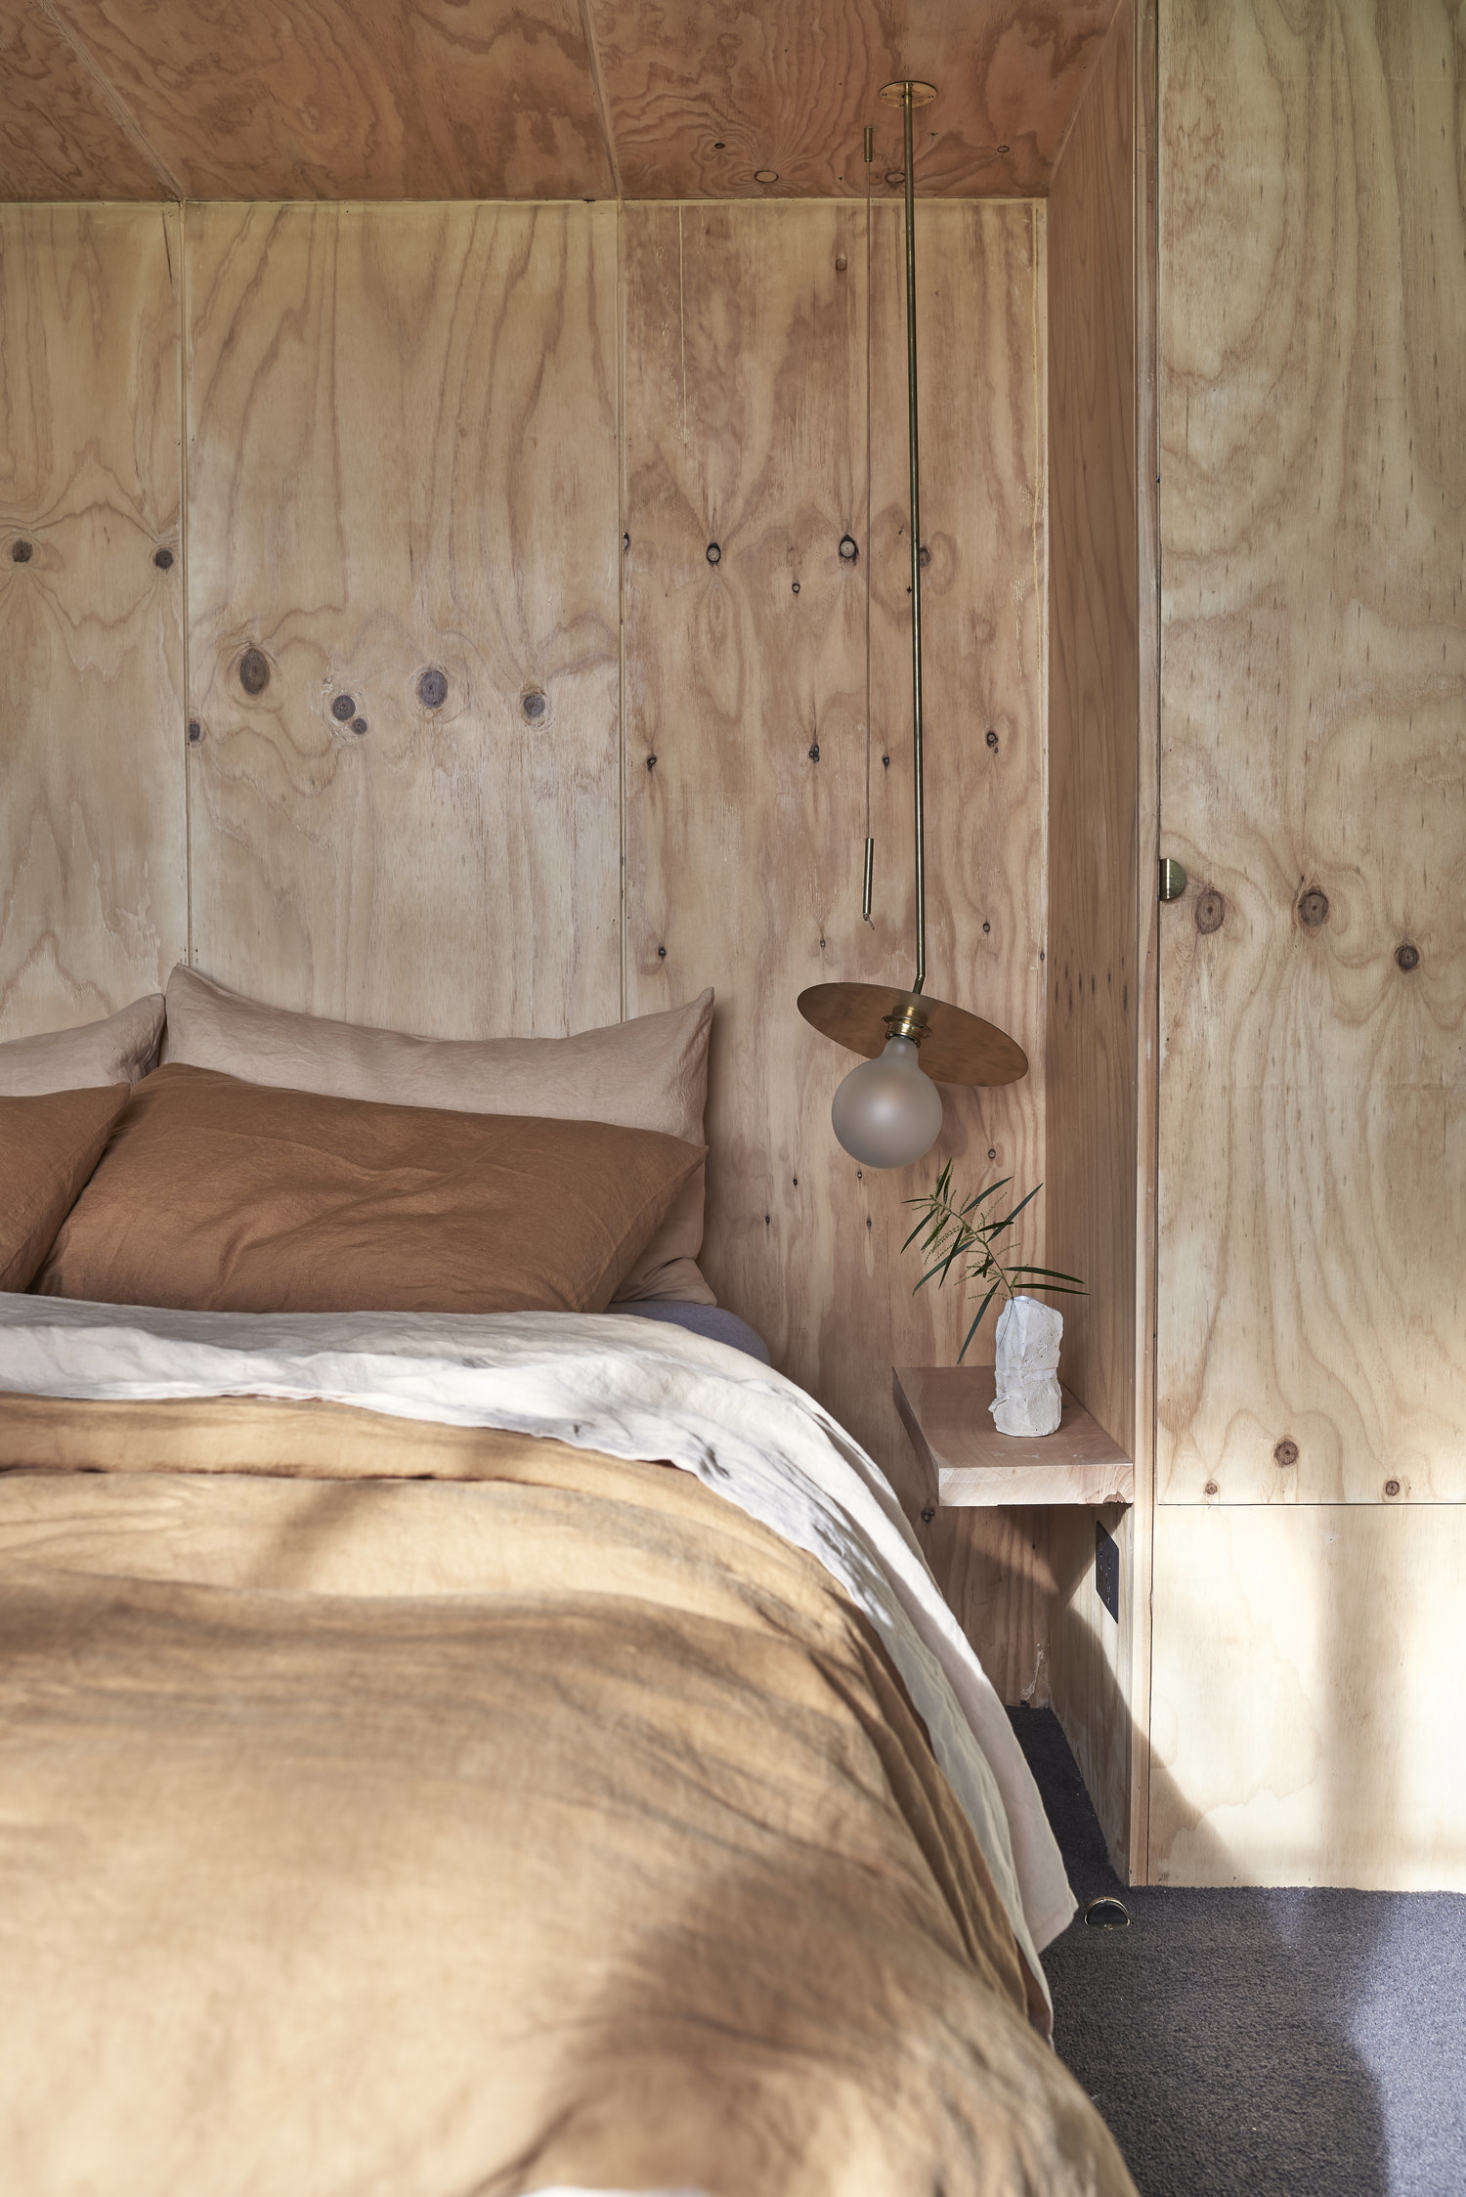 The bed is inset in a knotty plywood niche with an integrated closet on one side.